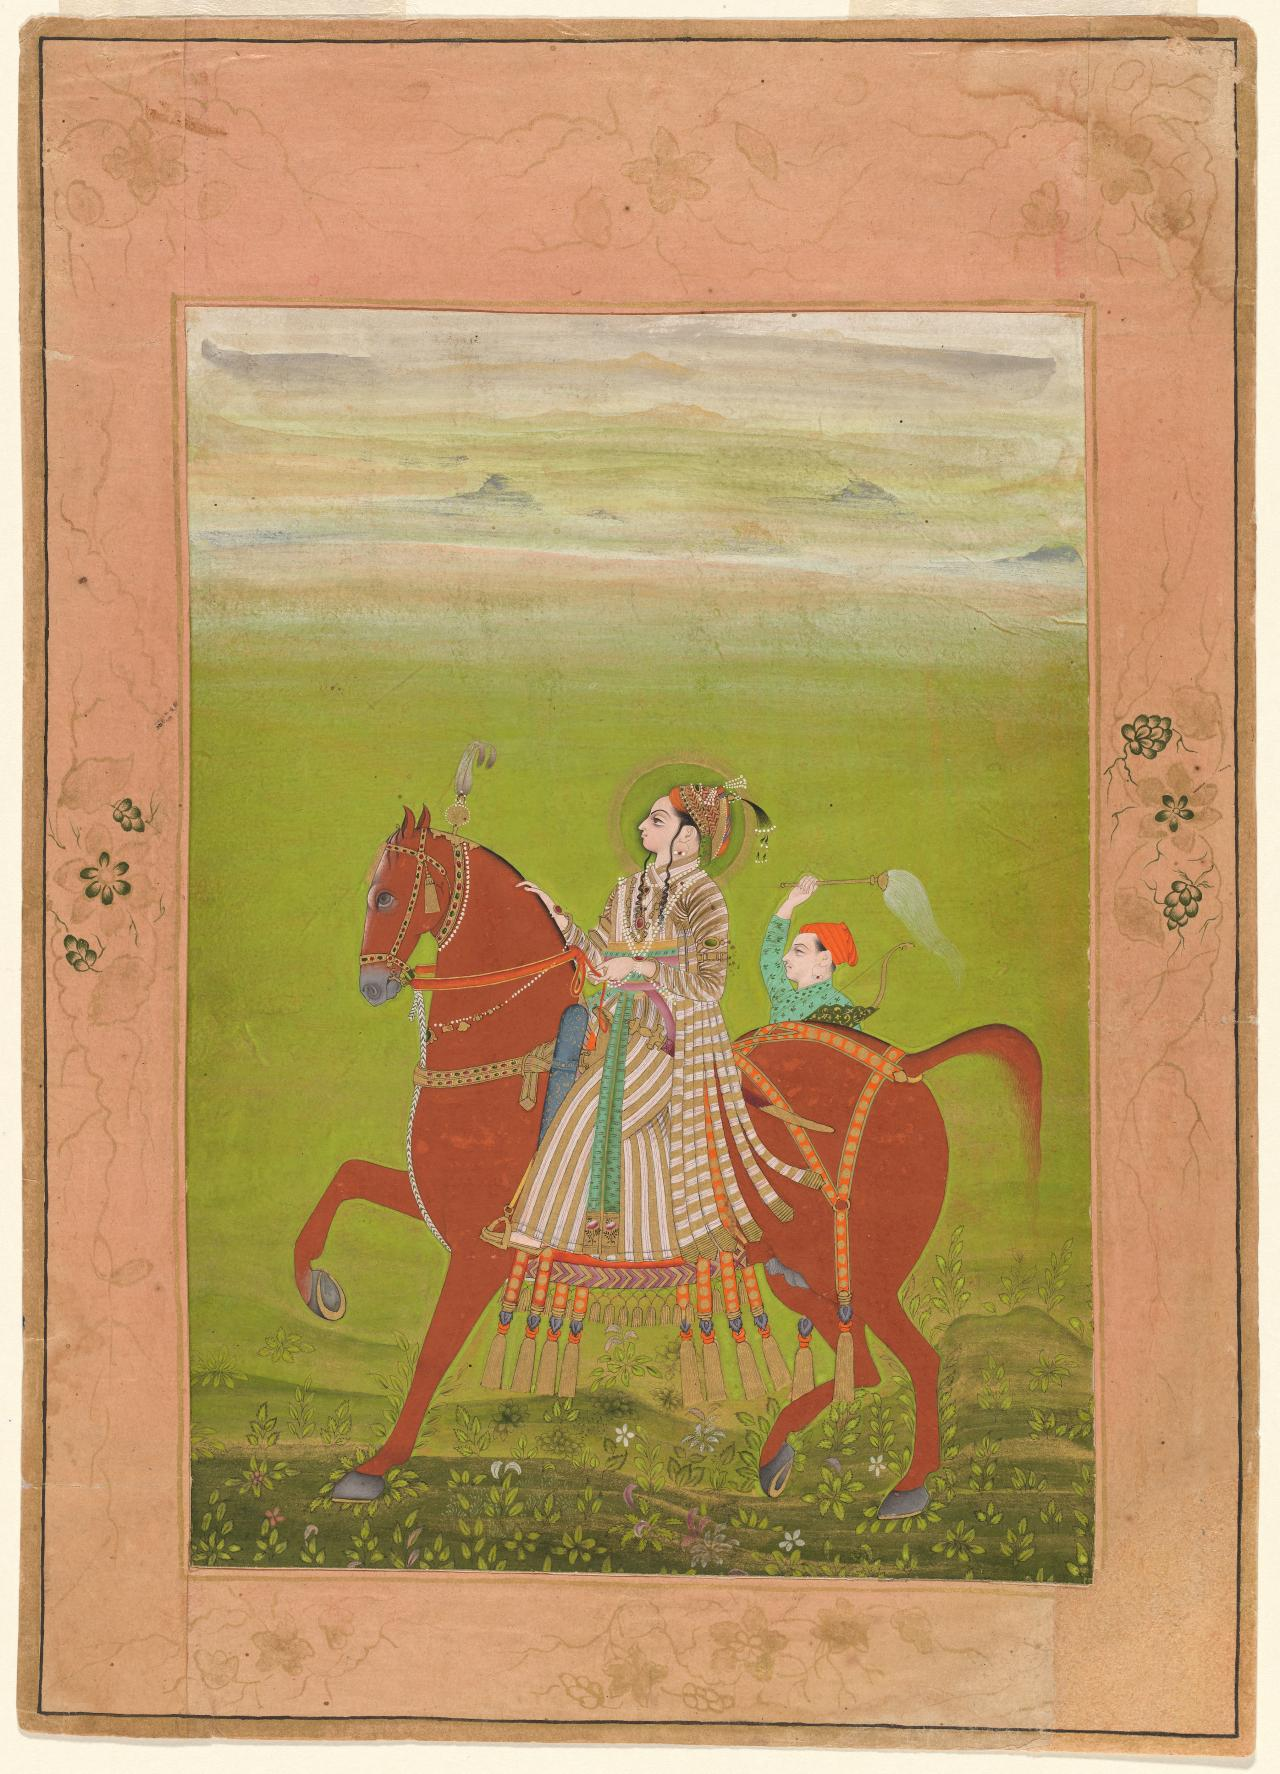 Prince Zorawar Singh of Bikaner riding